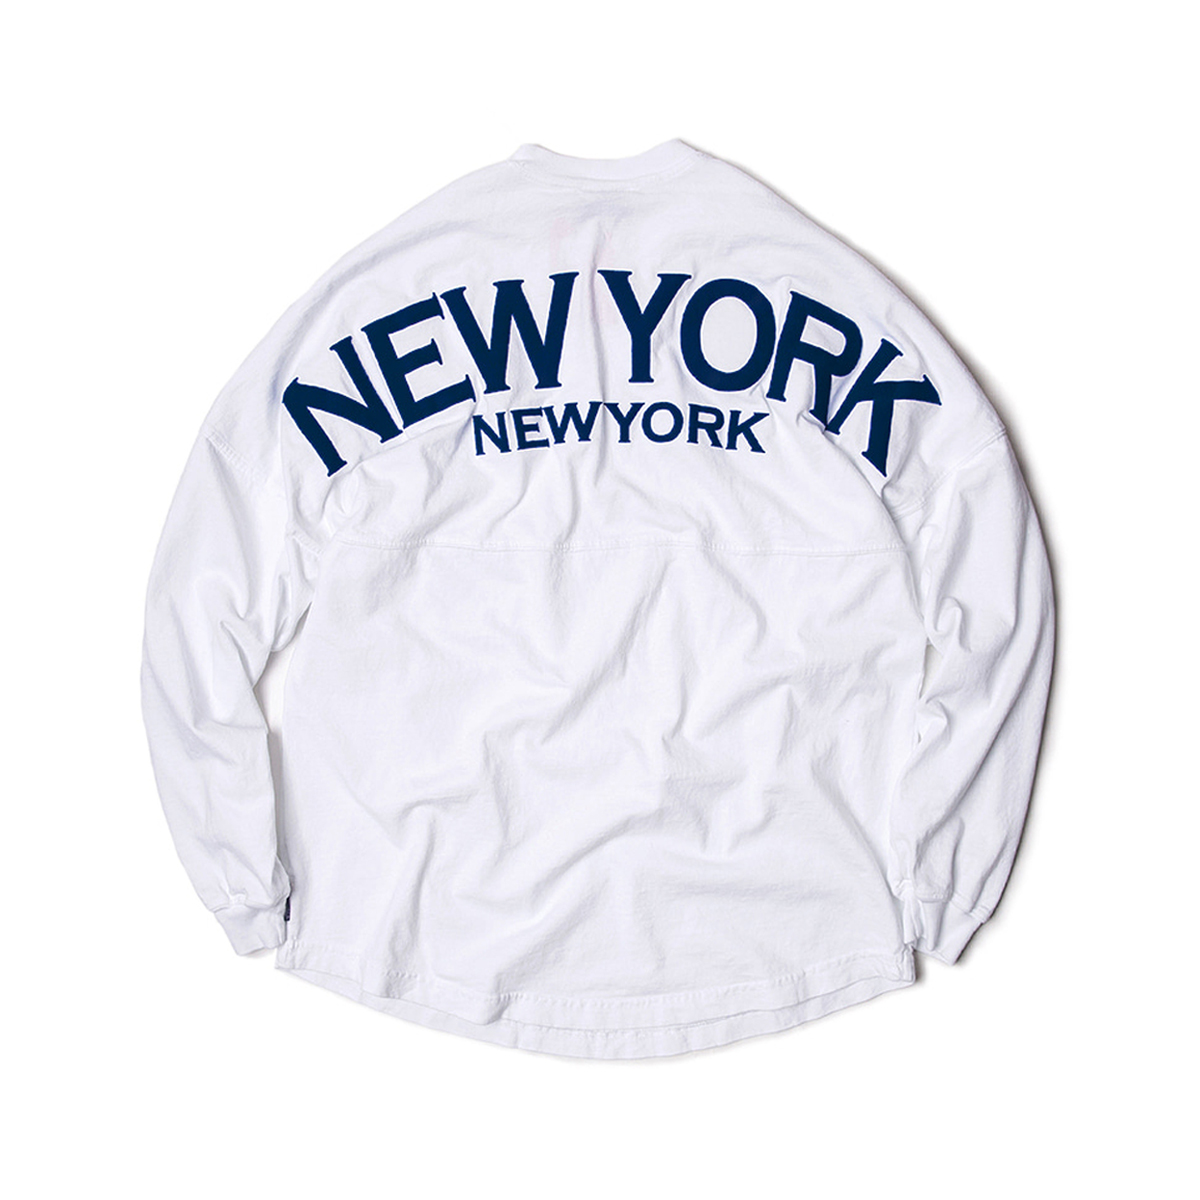 [SPIRIT JERSEY] NEW YORK L/S TEE 'WH/NV'